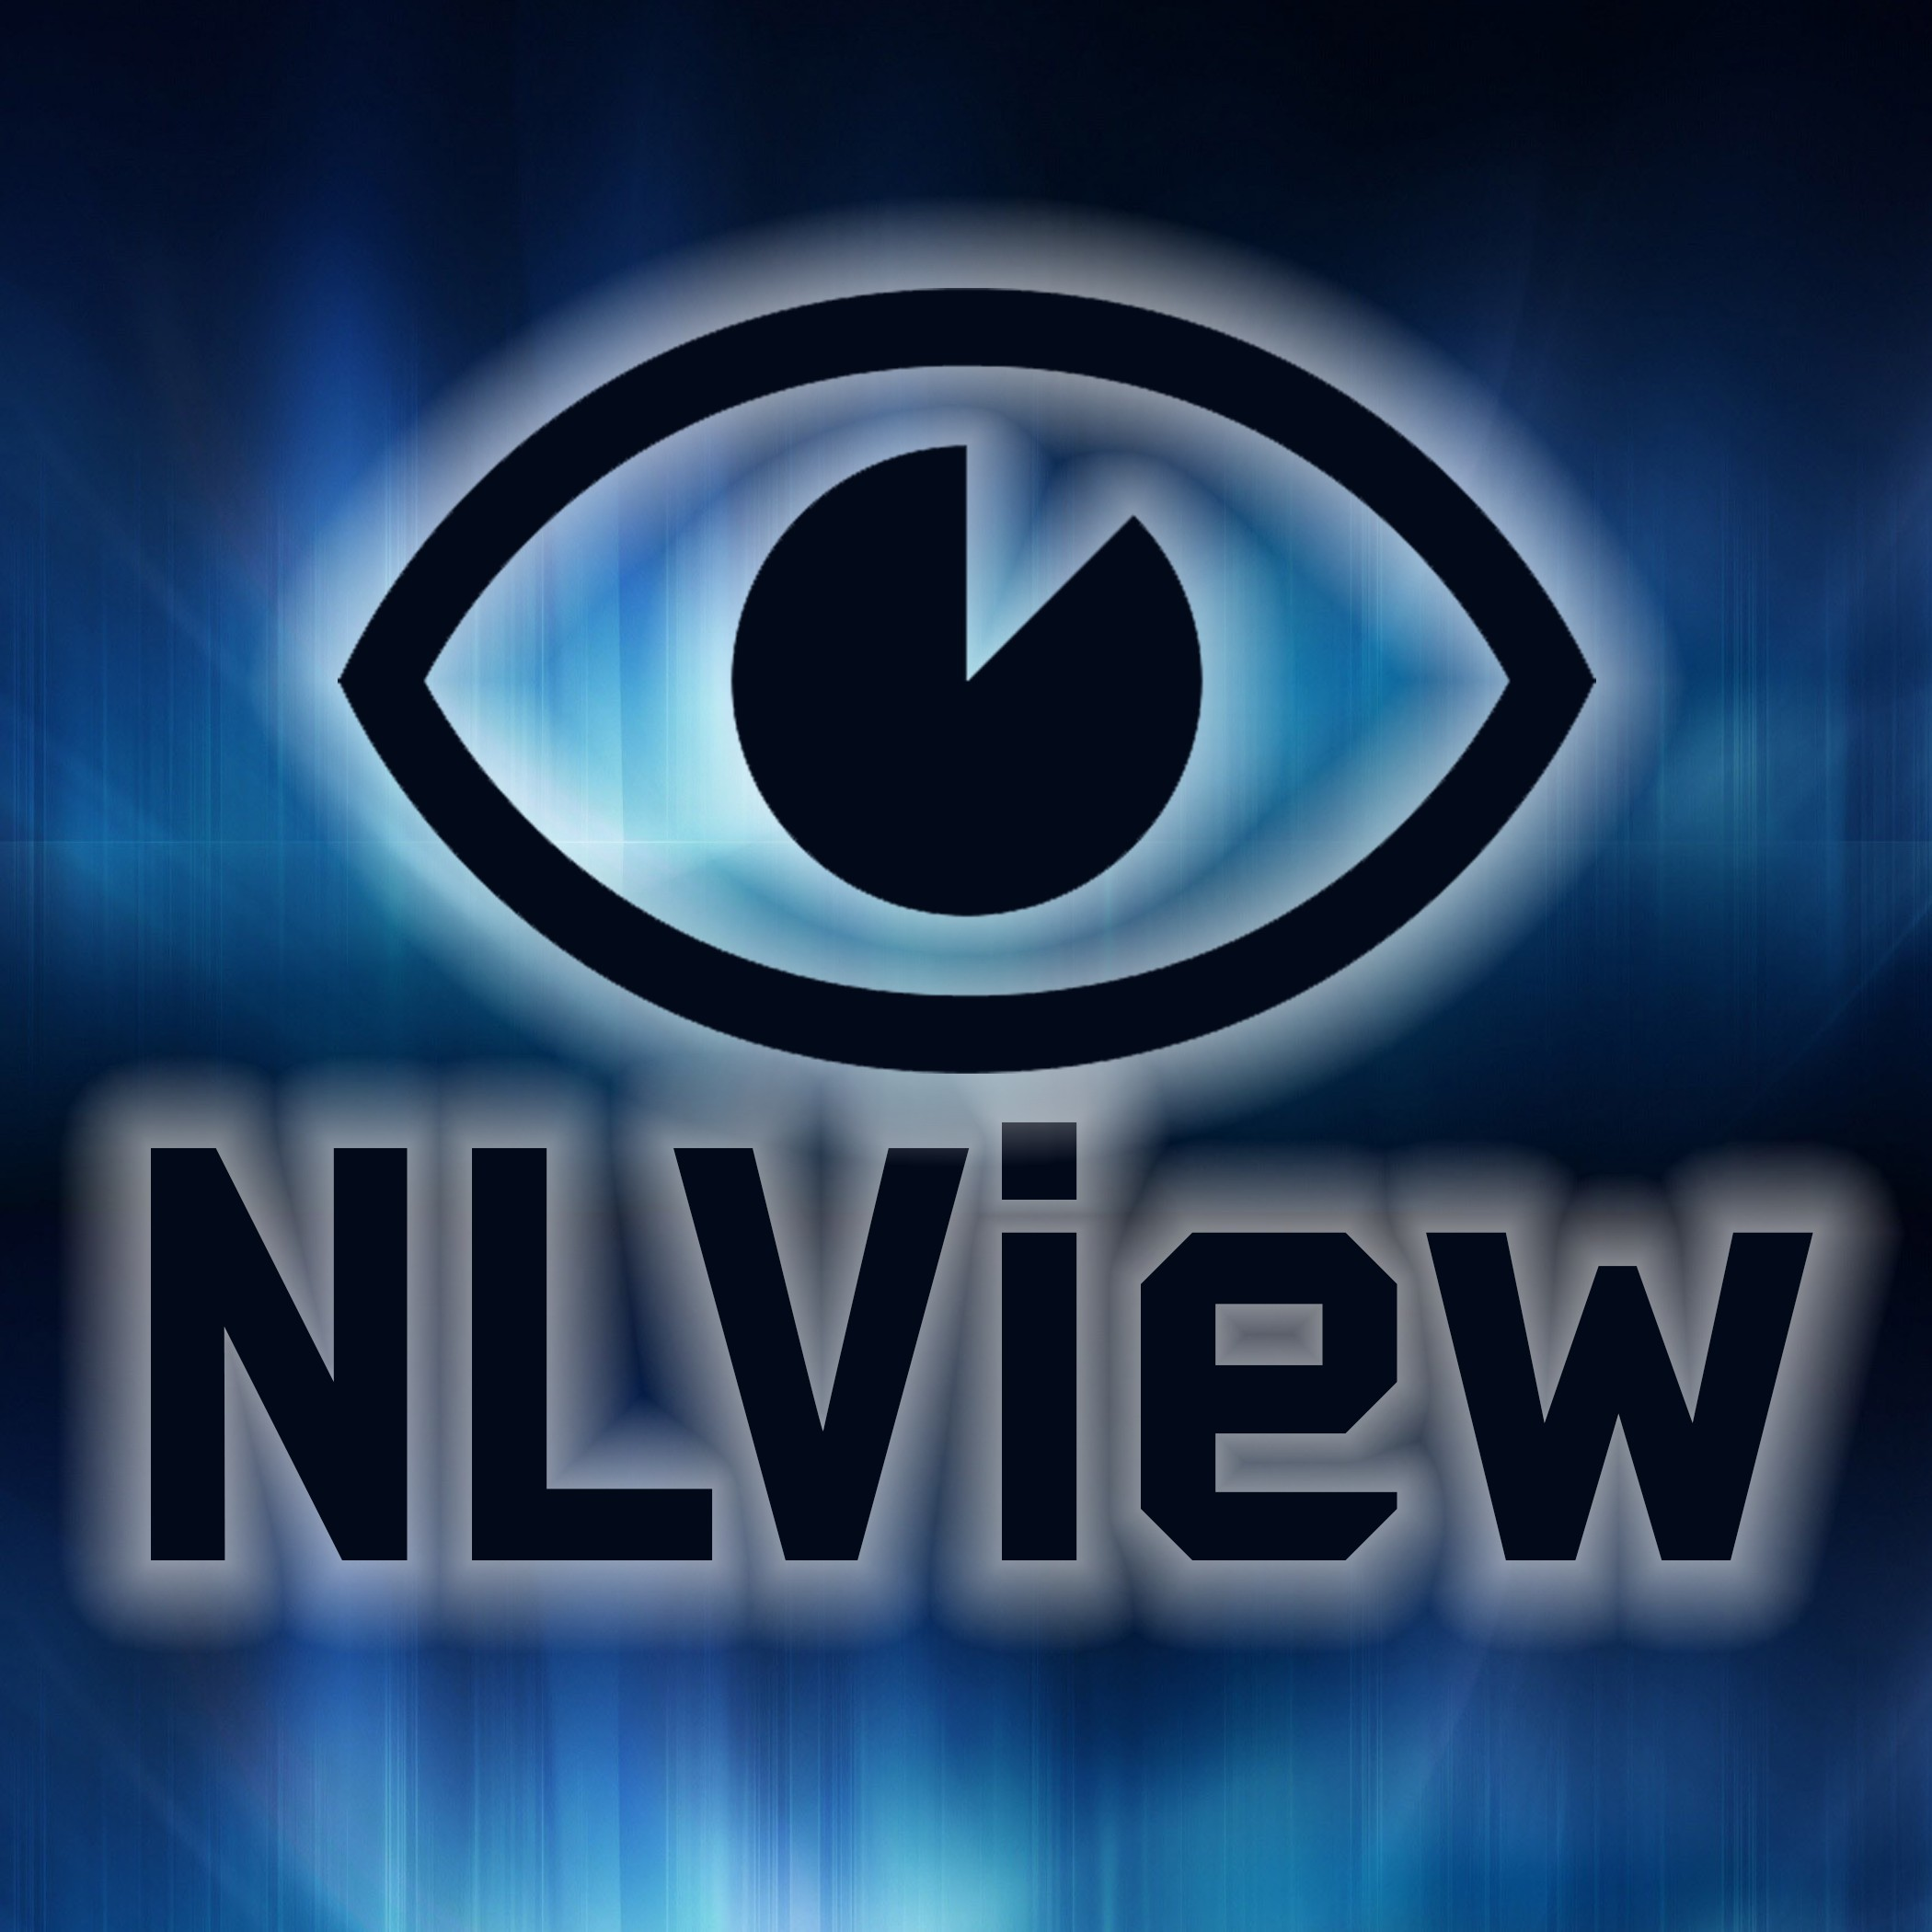 nlview